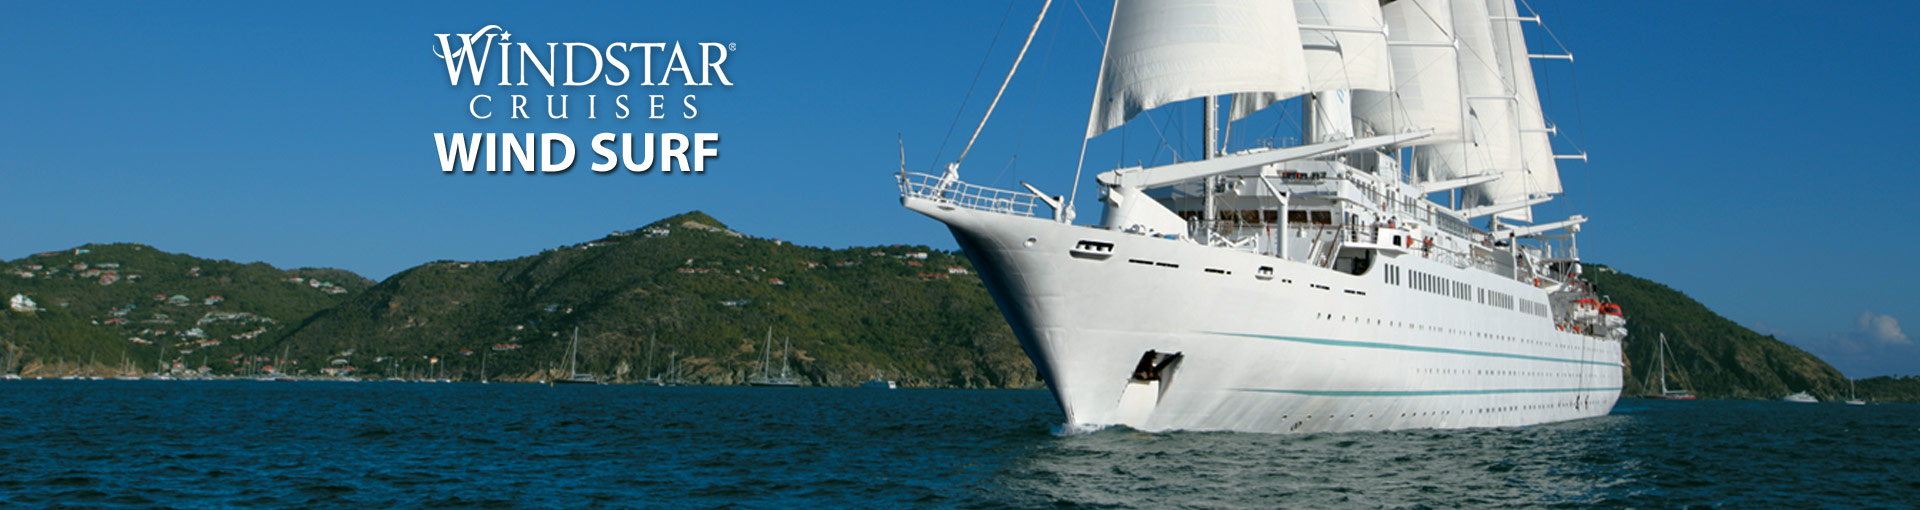 Windstar Cruises Wind Surf Cruise Ship